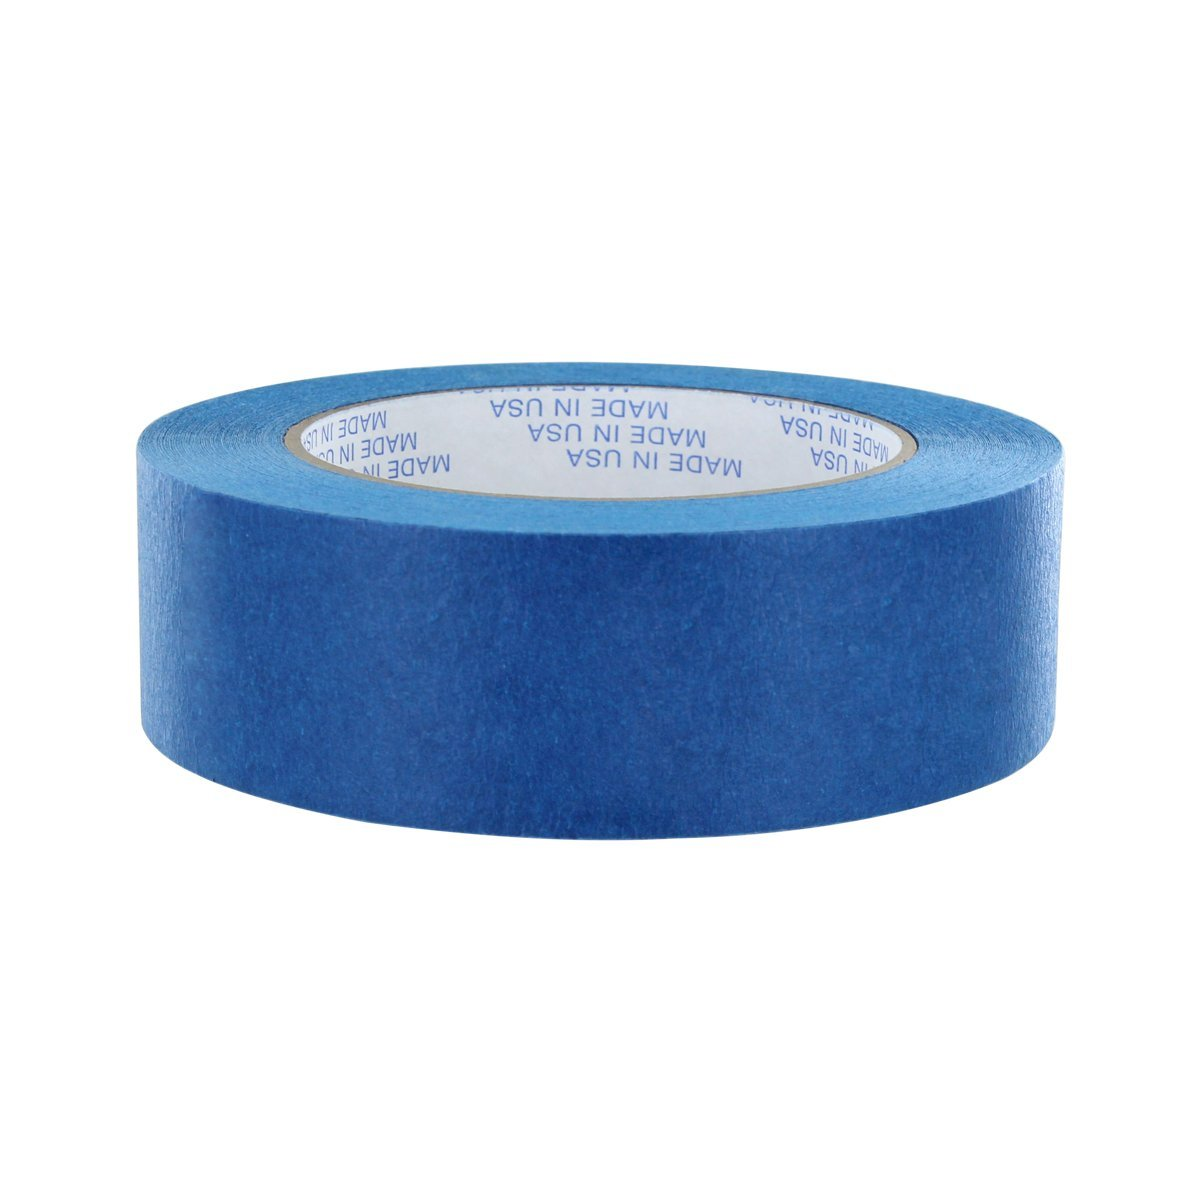 Rugged Blue M 187 Blue Painters' Masking Tape 3in x 60yd - 1 Pack by Rugged Blue